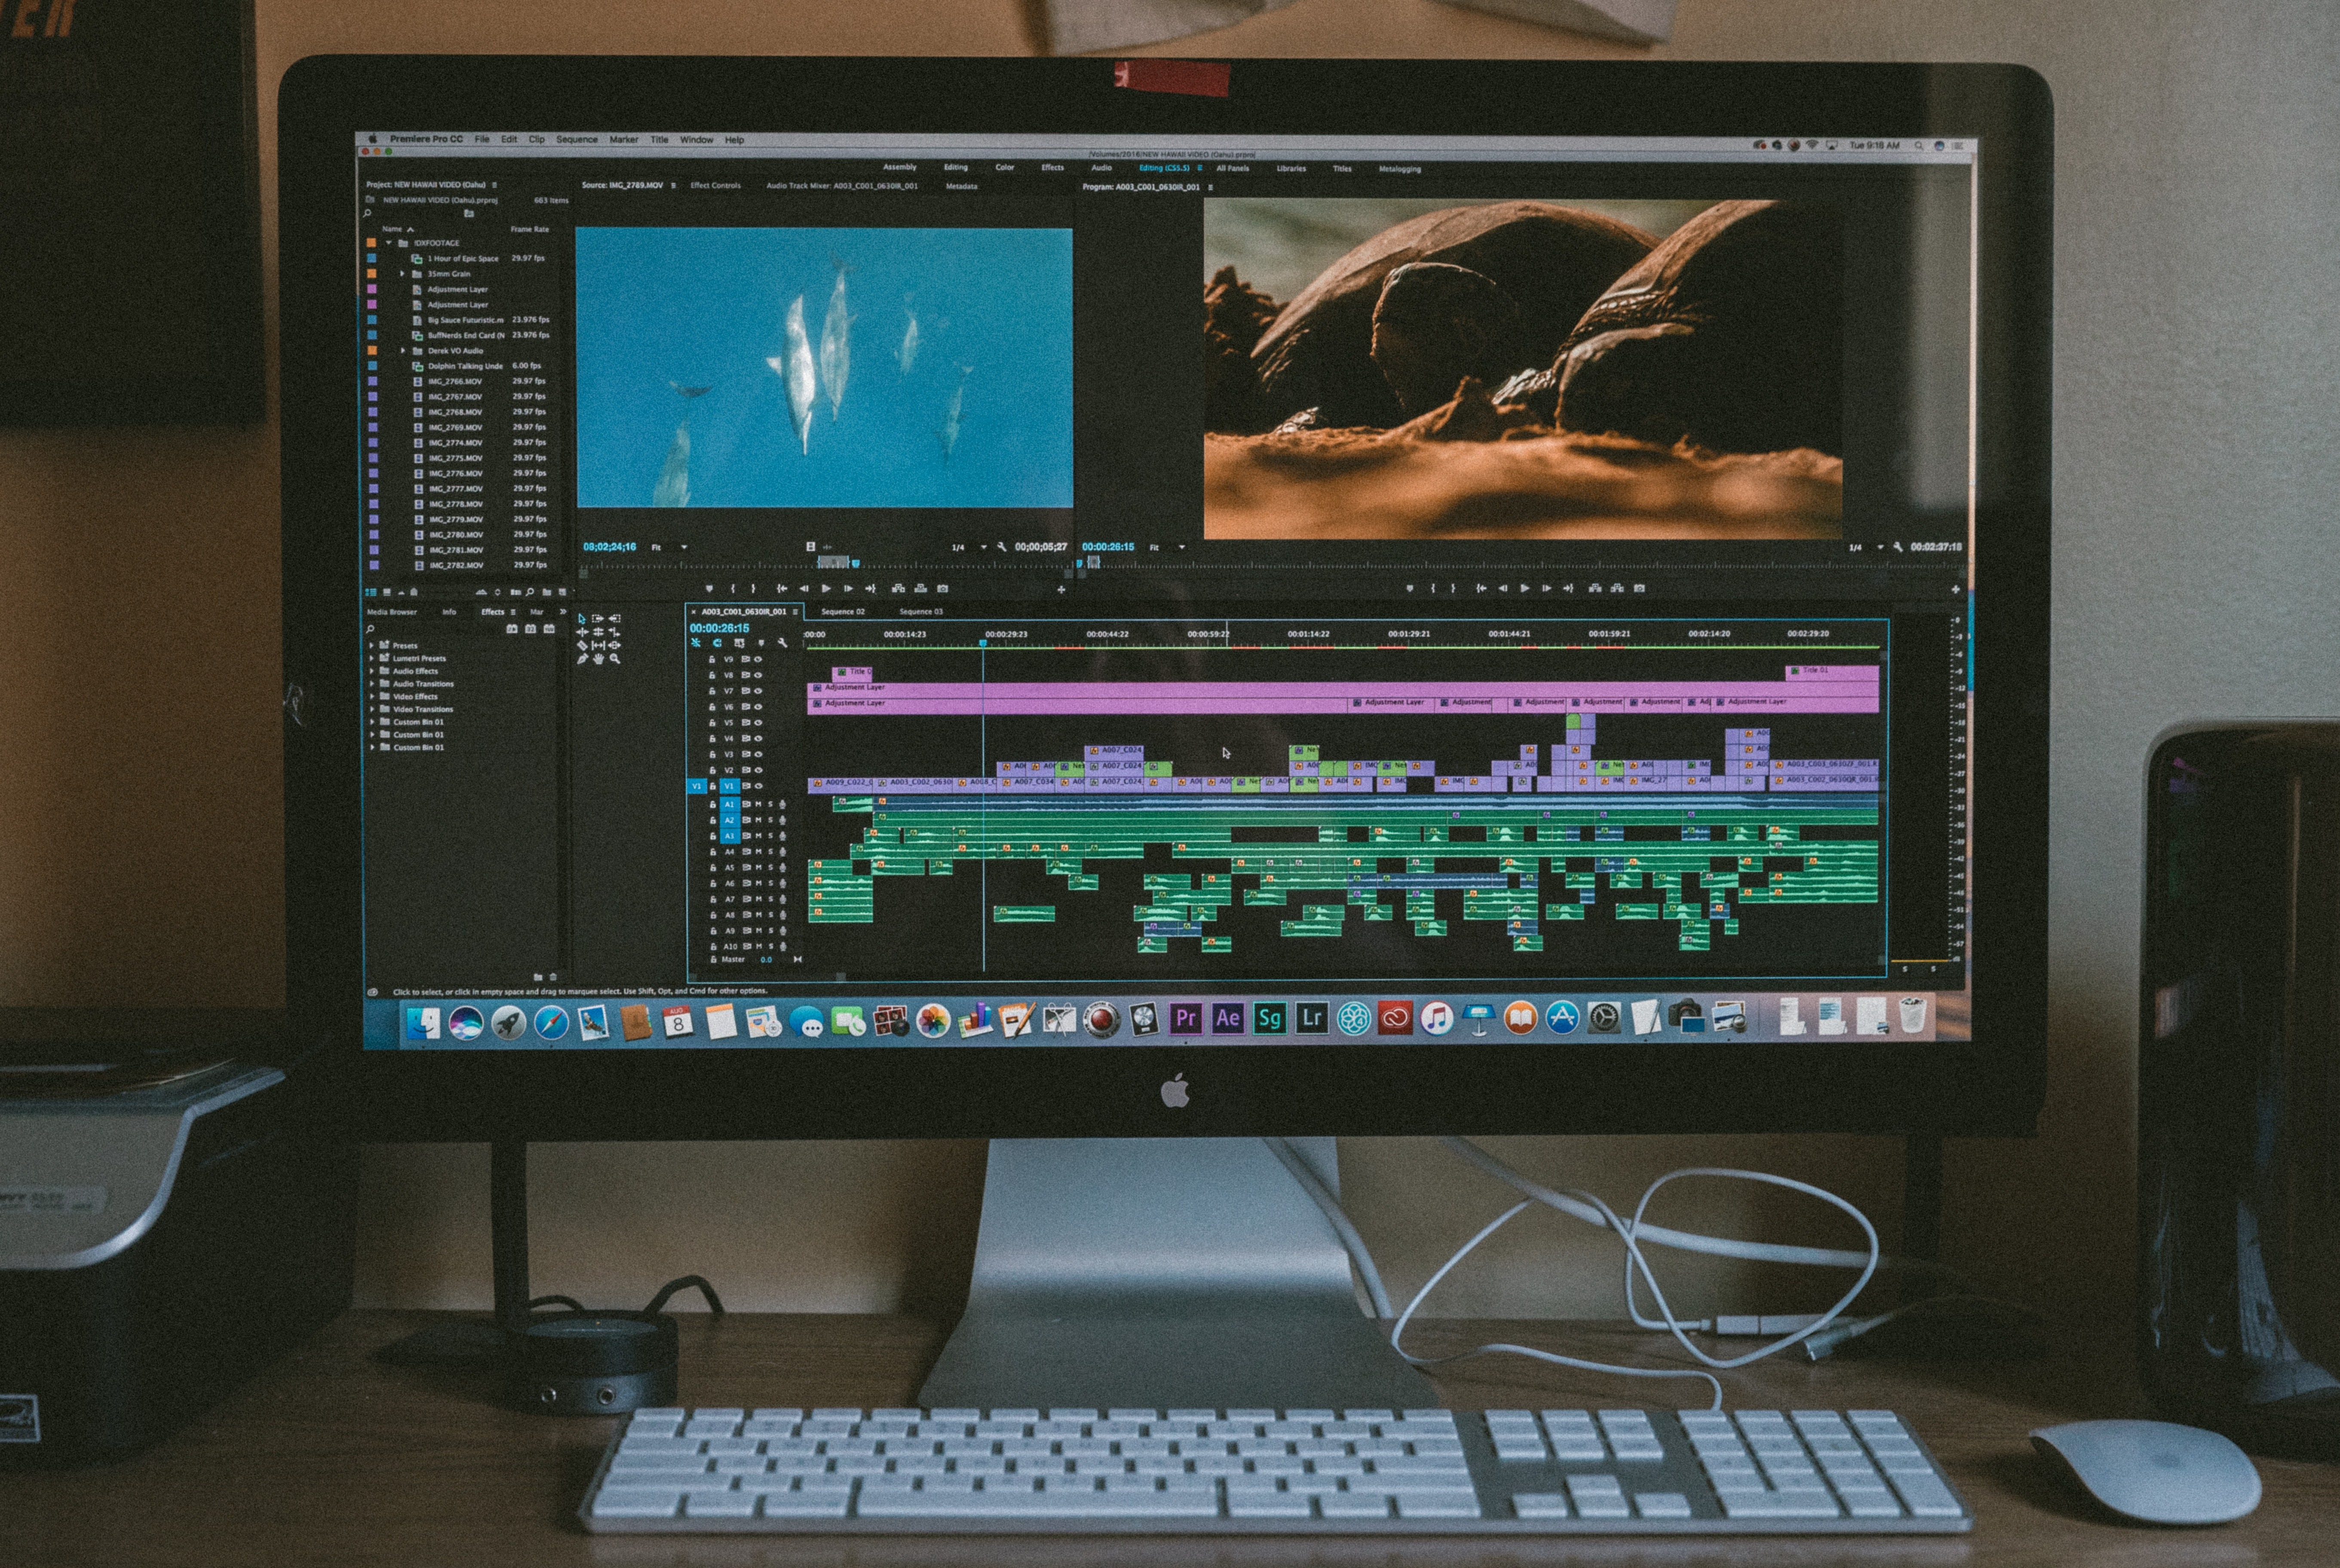 computer-being-used-to-edit-video